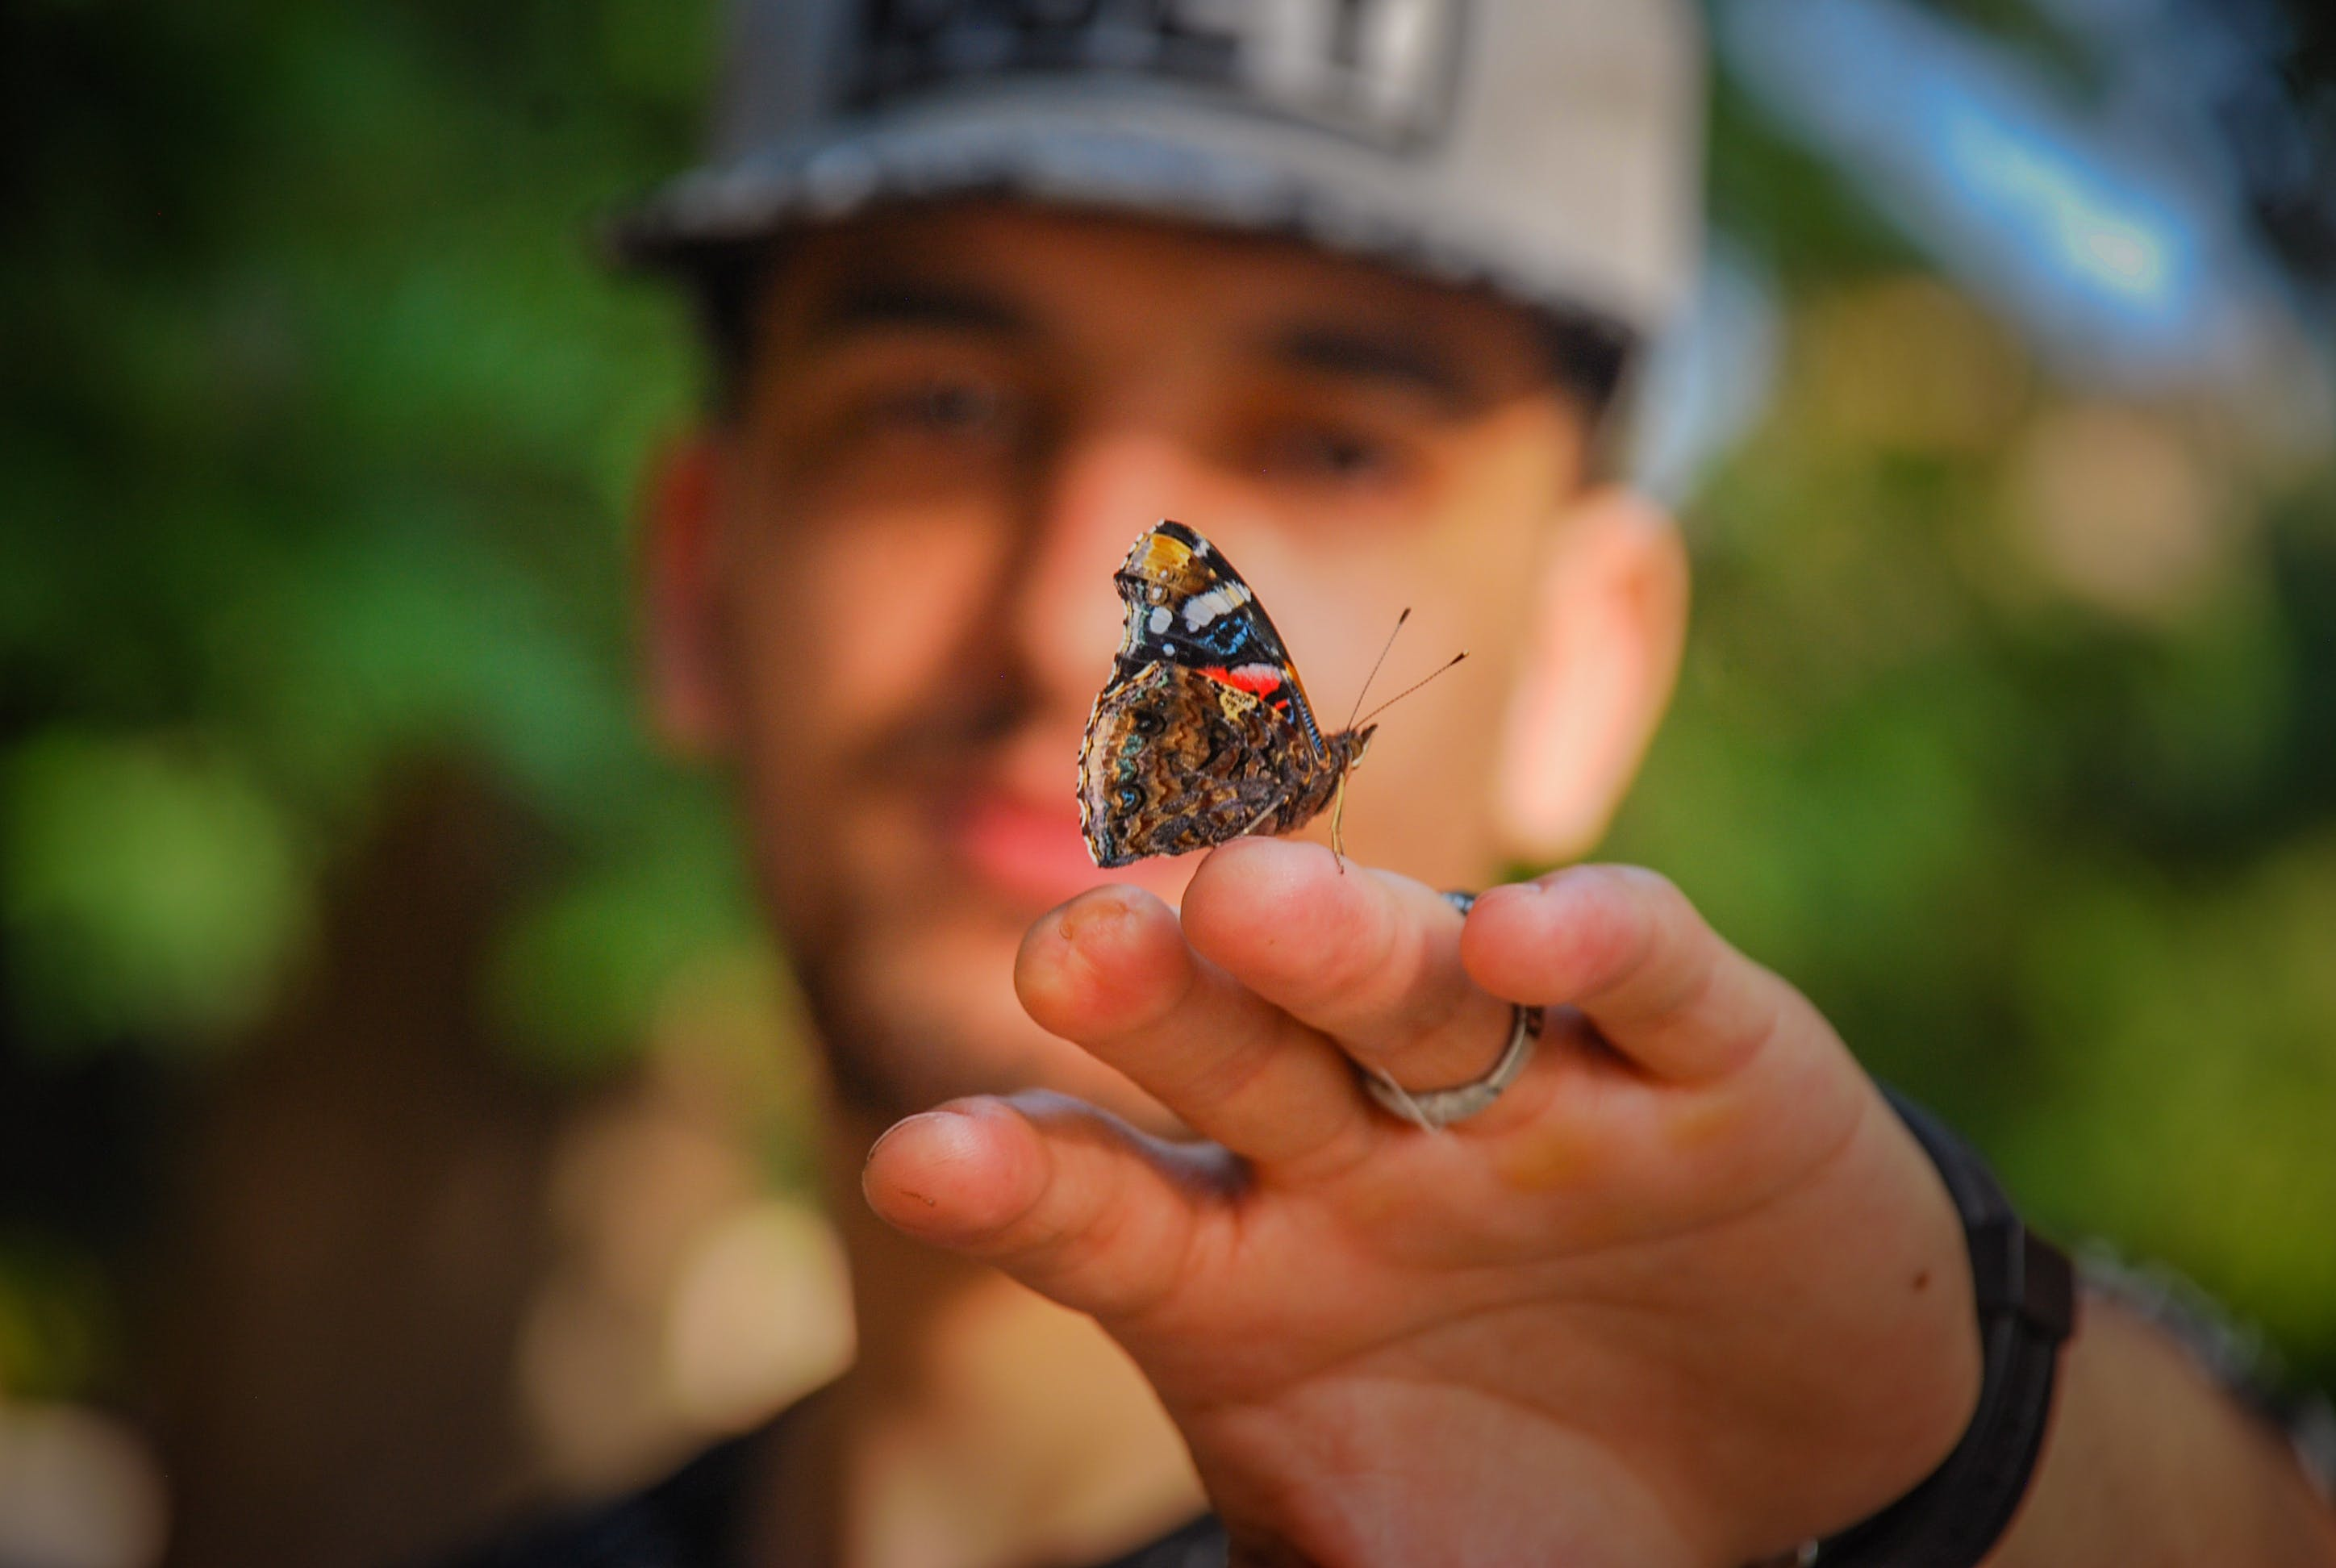 Brown and Black Butterfly on Man's Hand